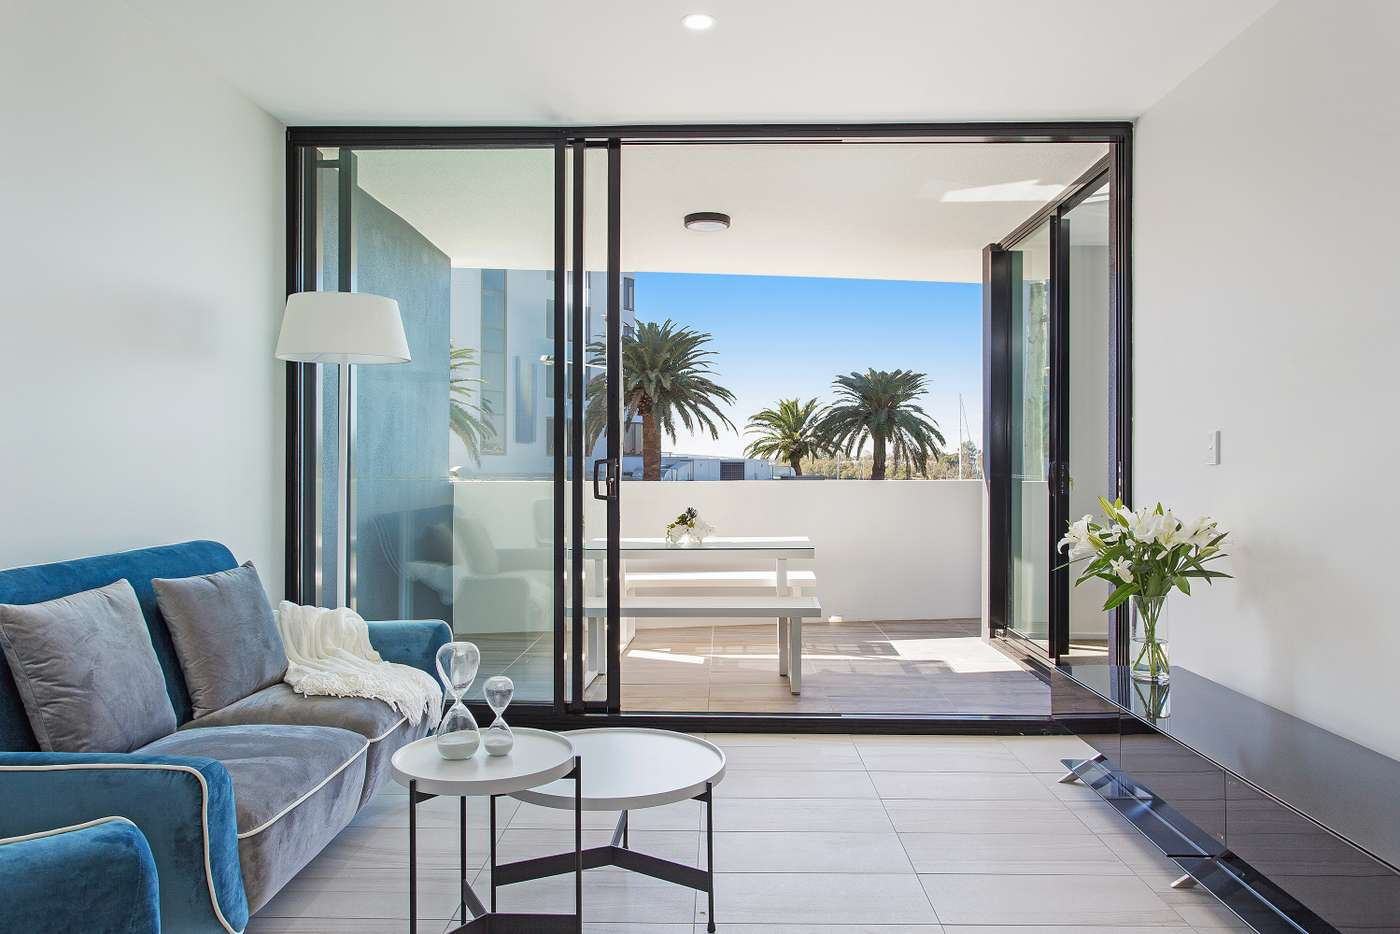 Main view of Homely apartment listing, 505/8 Hunt Street, Hamilton QLD 4007